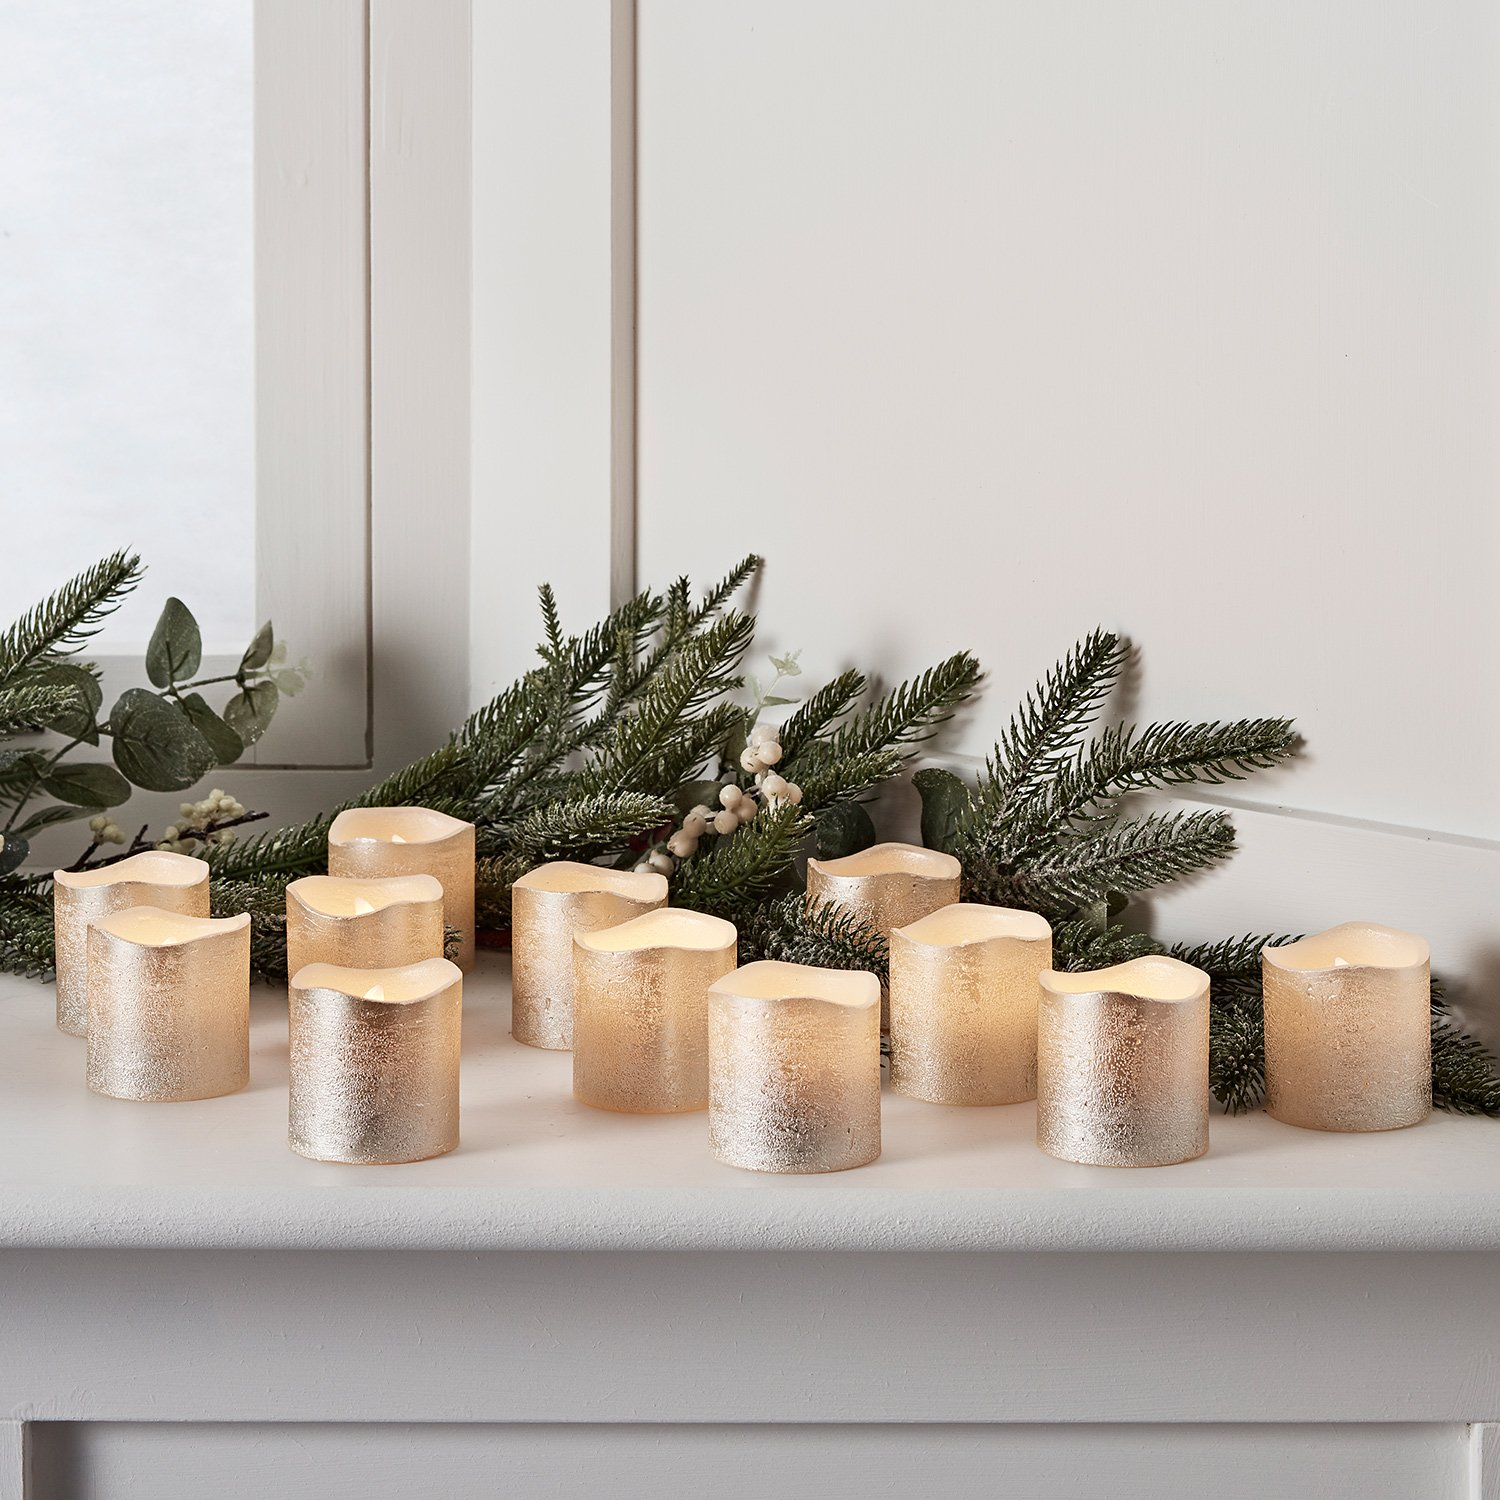 Lights4fun, Inc. Set of 12 Champagne Gold Wax Battery Operated Flameless LED Votive Tealight Candles by Lights4fun, Inc.